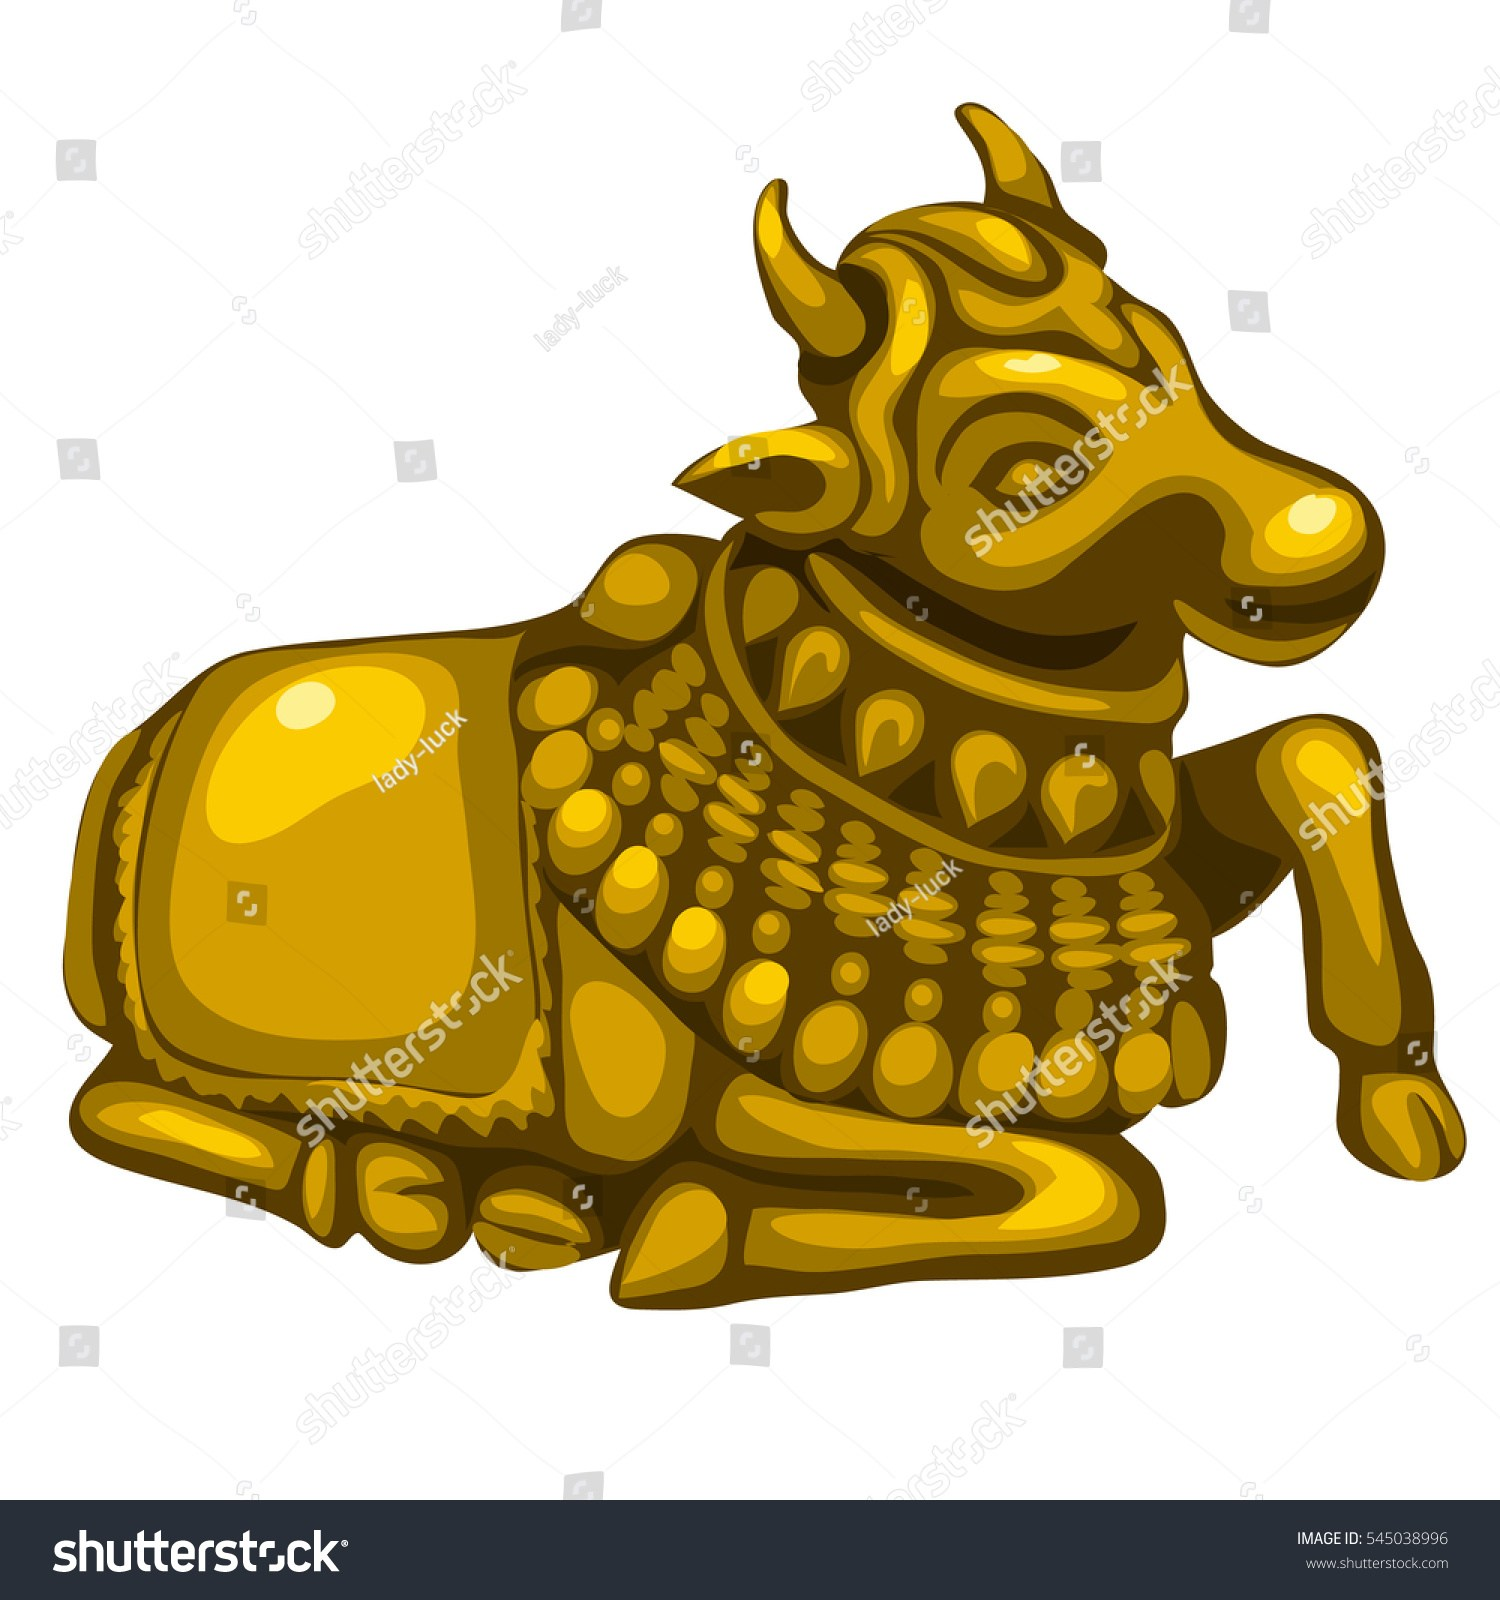 Golden calf clipart 8 » Clipart Portal.